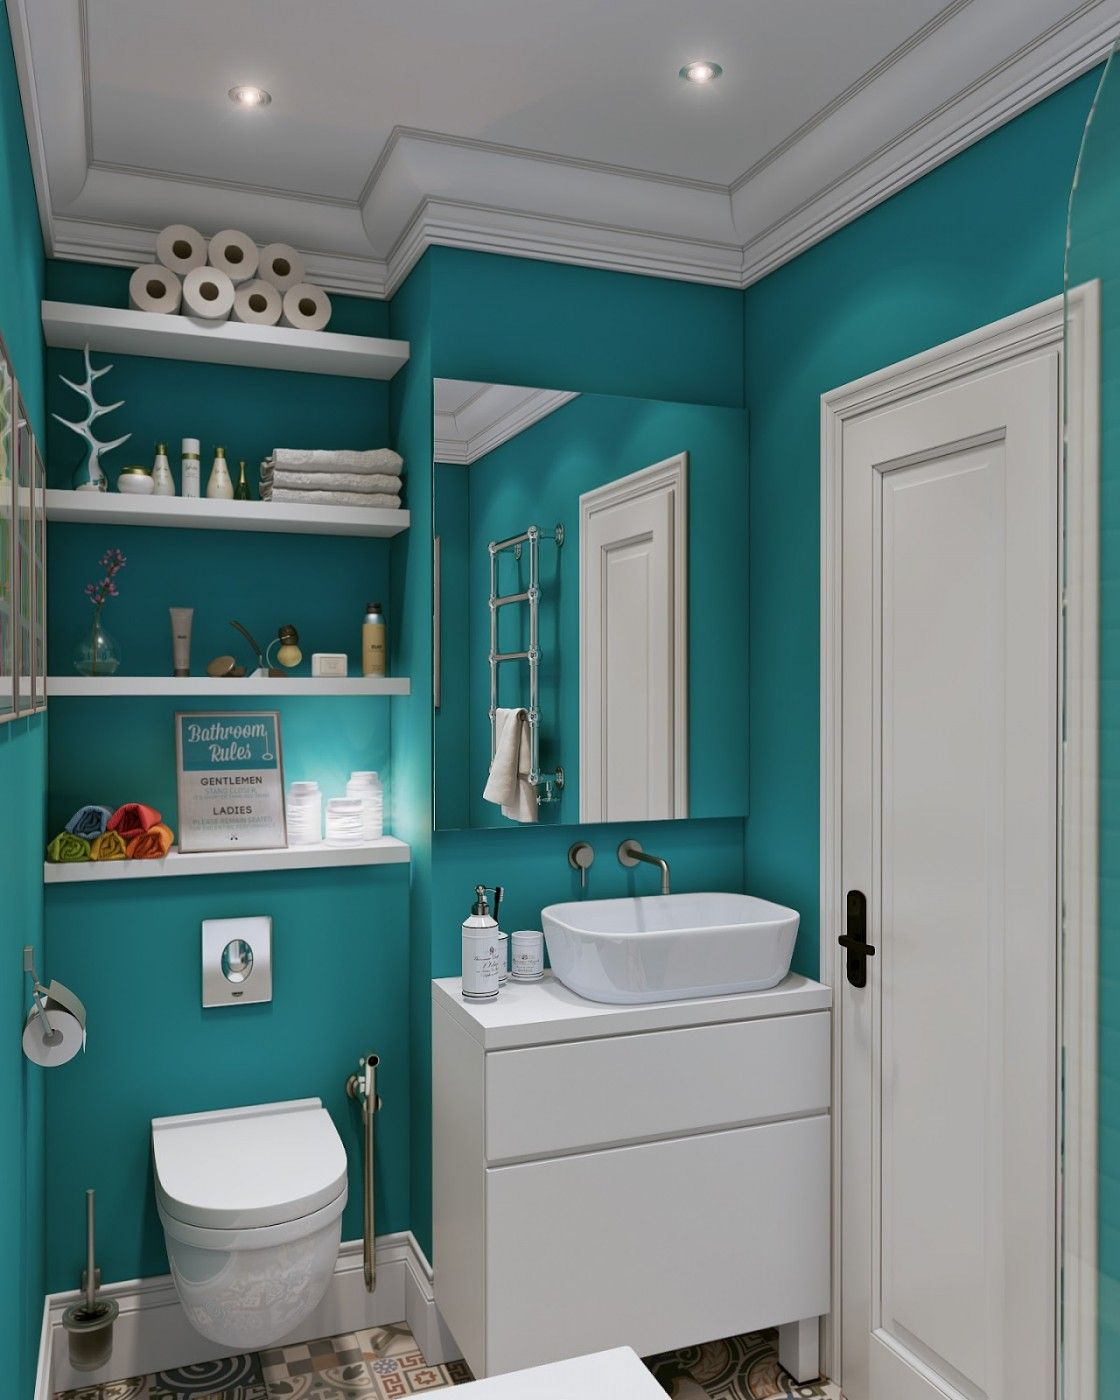 Small Bathroom Design Ideas Color Schemes beautiful small bathroom color ideas with best bathroom color schemes bathroom color schemes for small Contemporary Teal Bathroom Wall Color Scheme With Wooden Shelves Above Toilet As